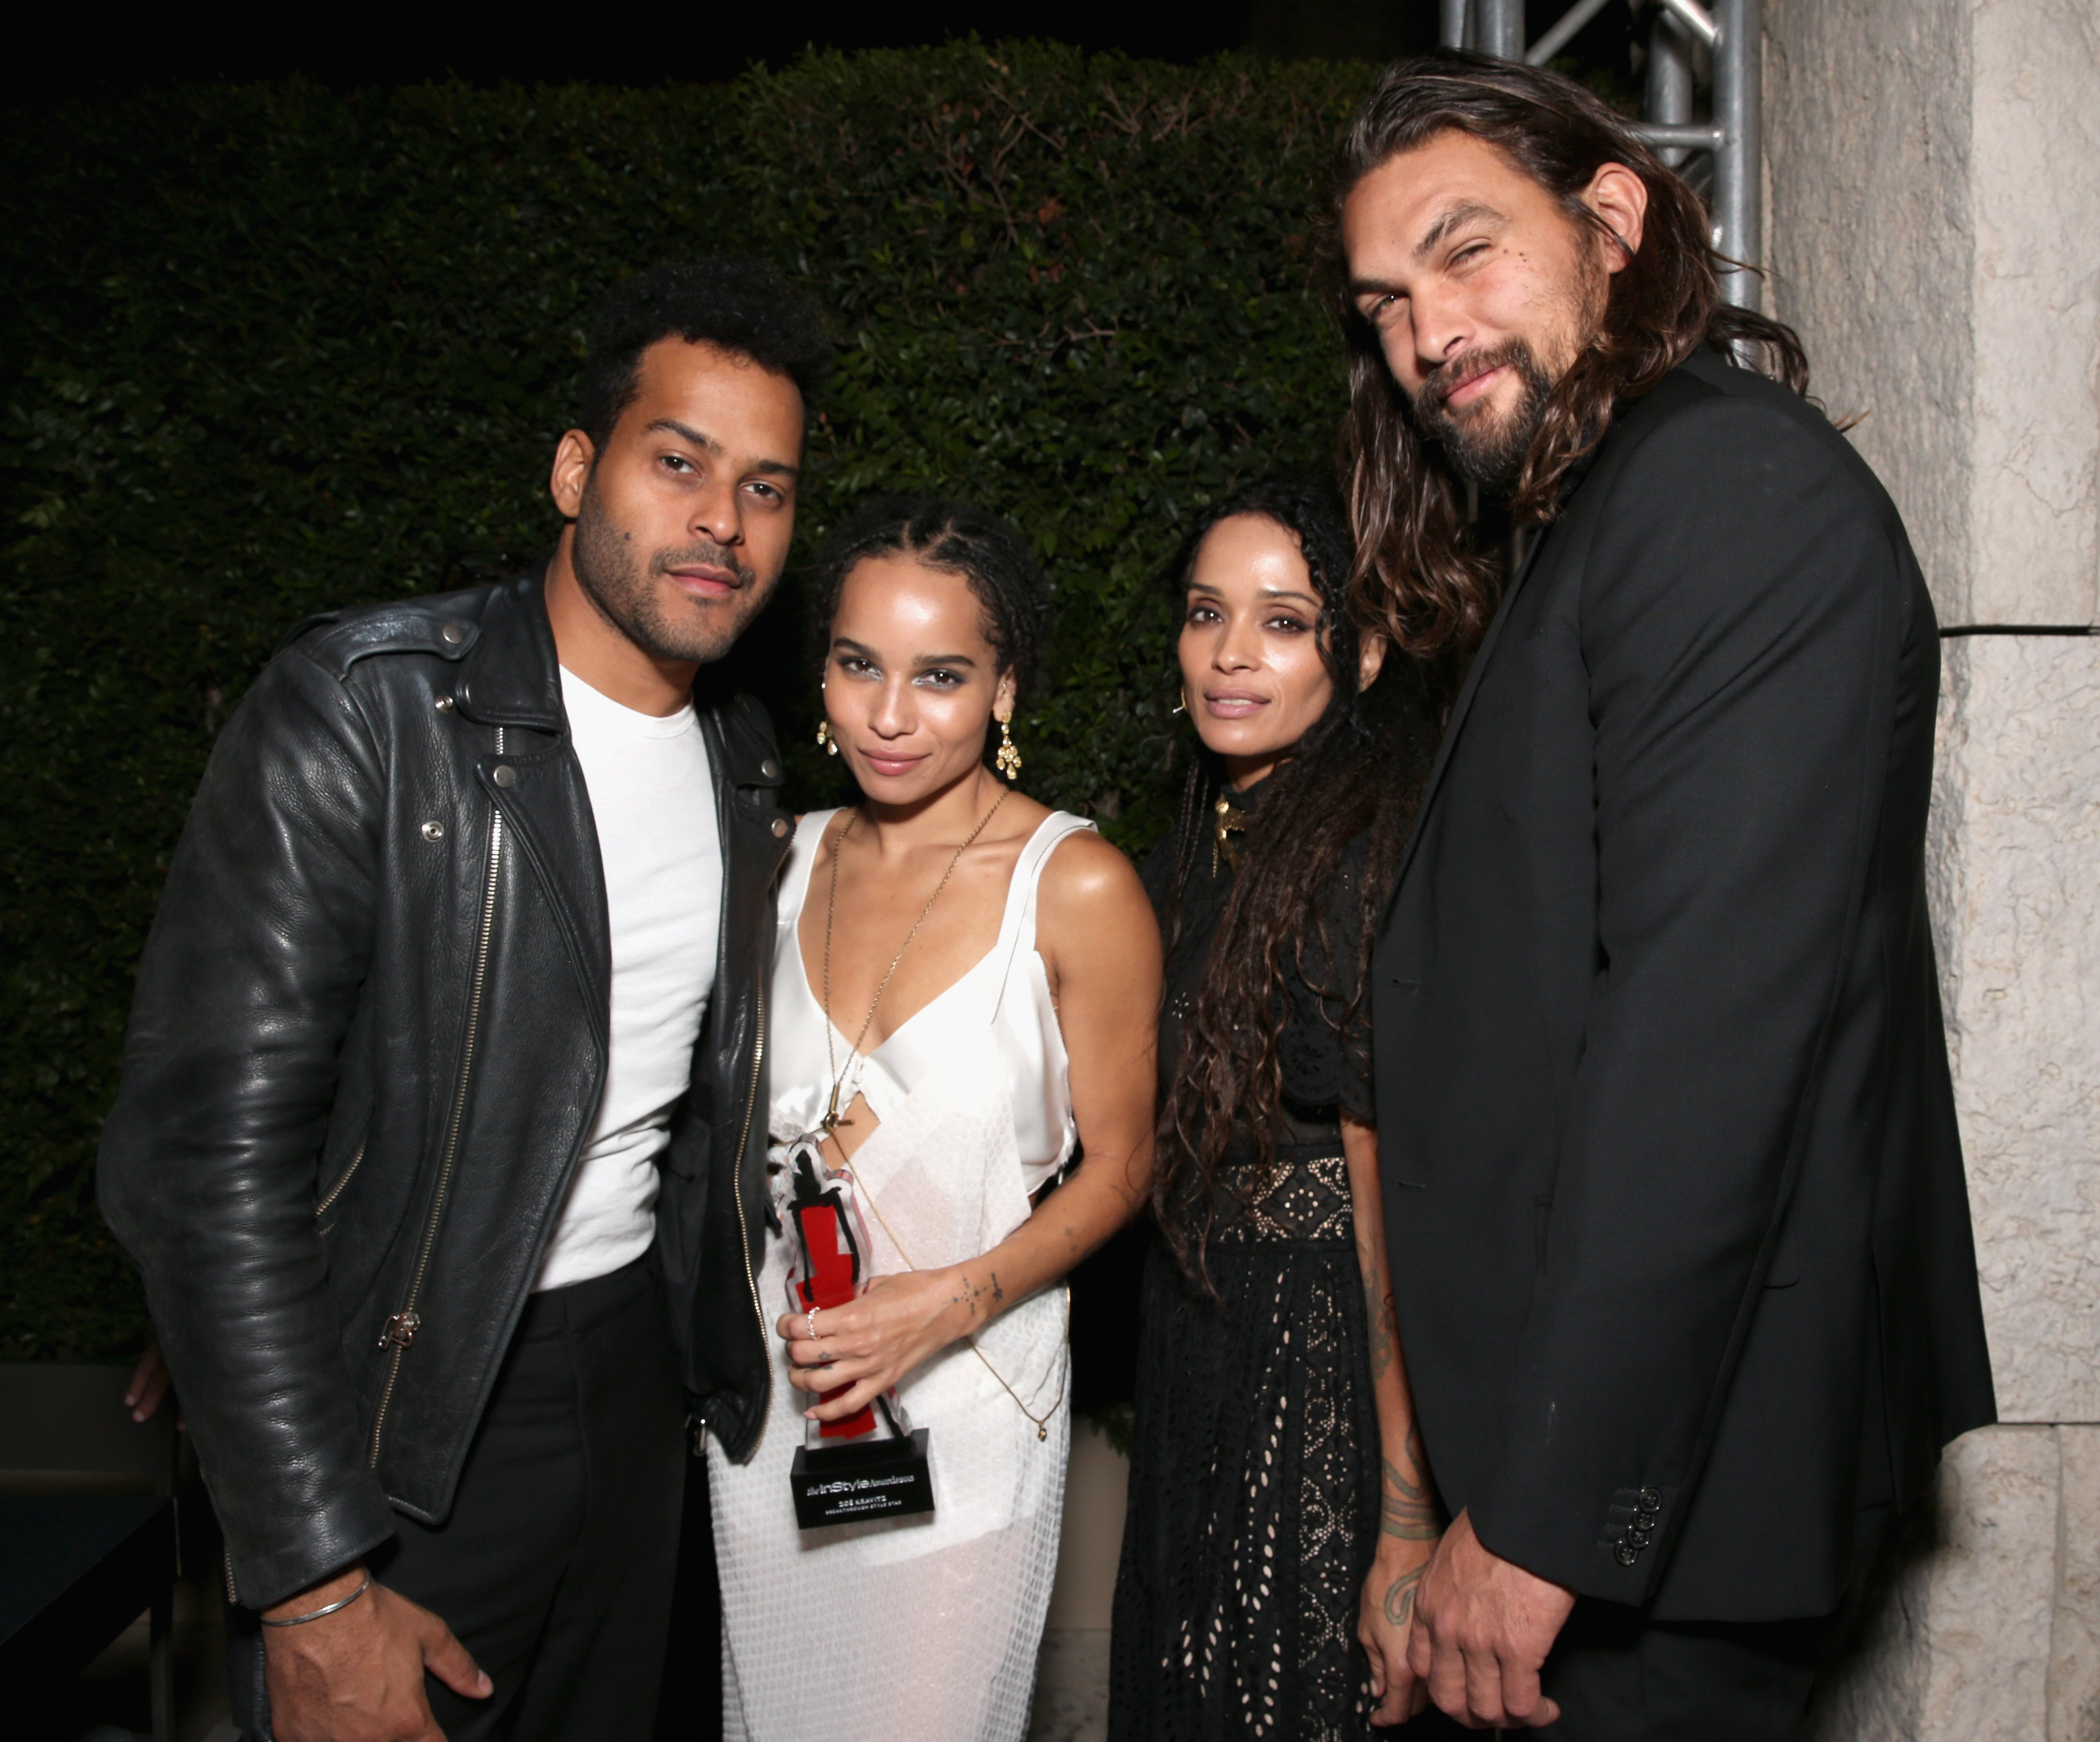 (L-R) Singer Twin Shadow, Zoë Kravitz,  Lisa Bonet & Jason Momoa at the InStyle Awards on Oct. 26, 2015 in California | Photo: Getty Images